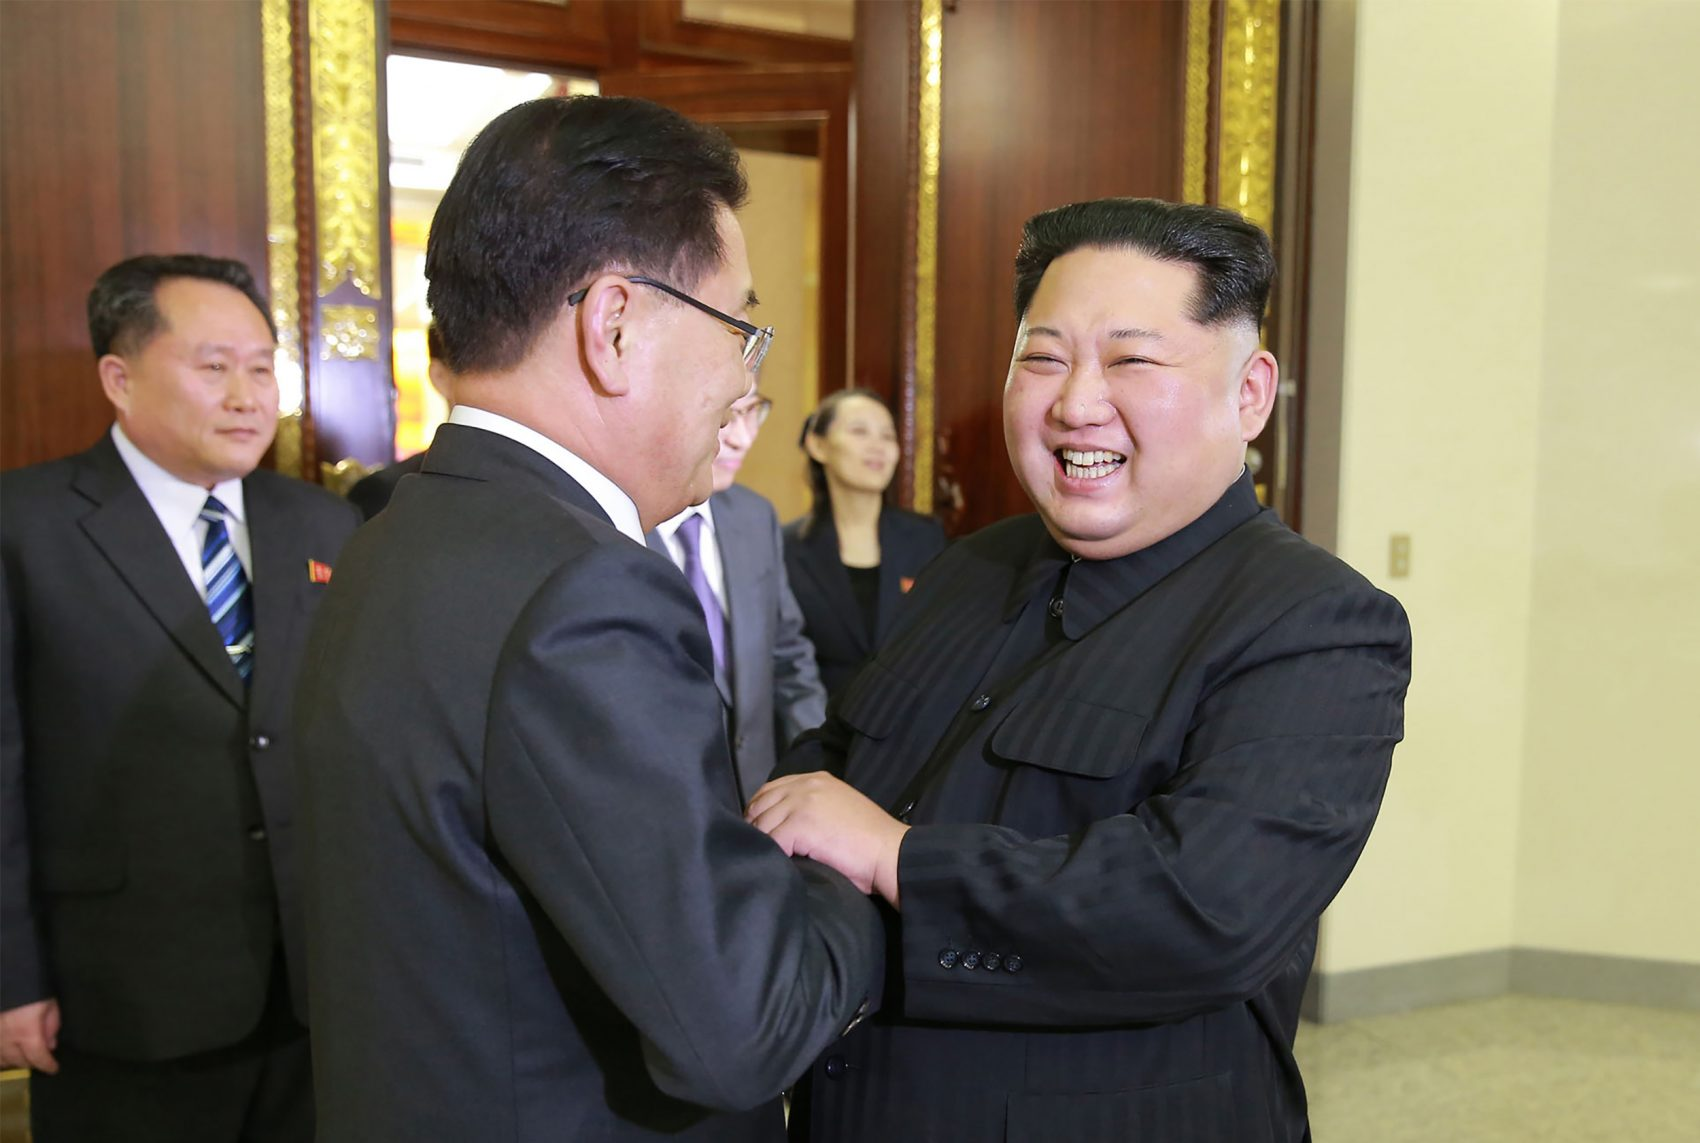 This picture taken on March 5, 2018 and released from North Korea's official Korean Central News Agency (KCNA) on March 6, 2018 shows North Korean leader Kim Jong Un (right) shaking hands with South Korean chief delegator Chung Eui-yong (center), who traveled as envoys of the South's President Moon Jae-in, during their meeting in Pyongyang. (STR/AFP/Getty Images)